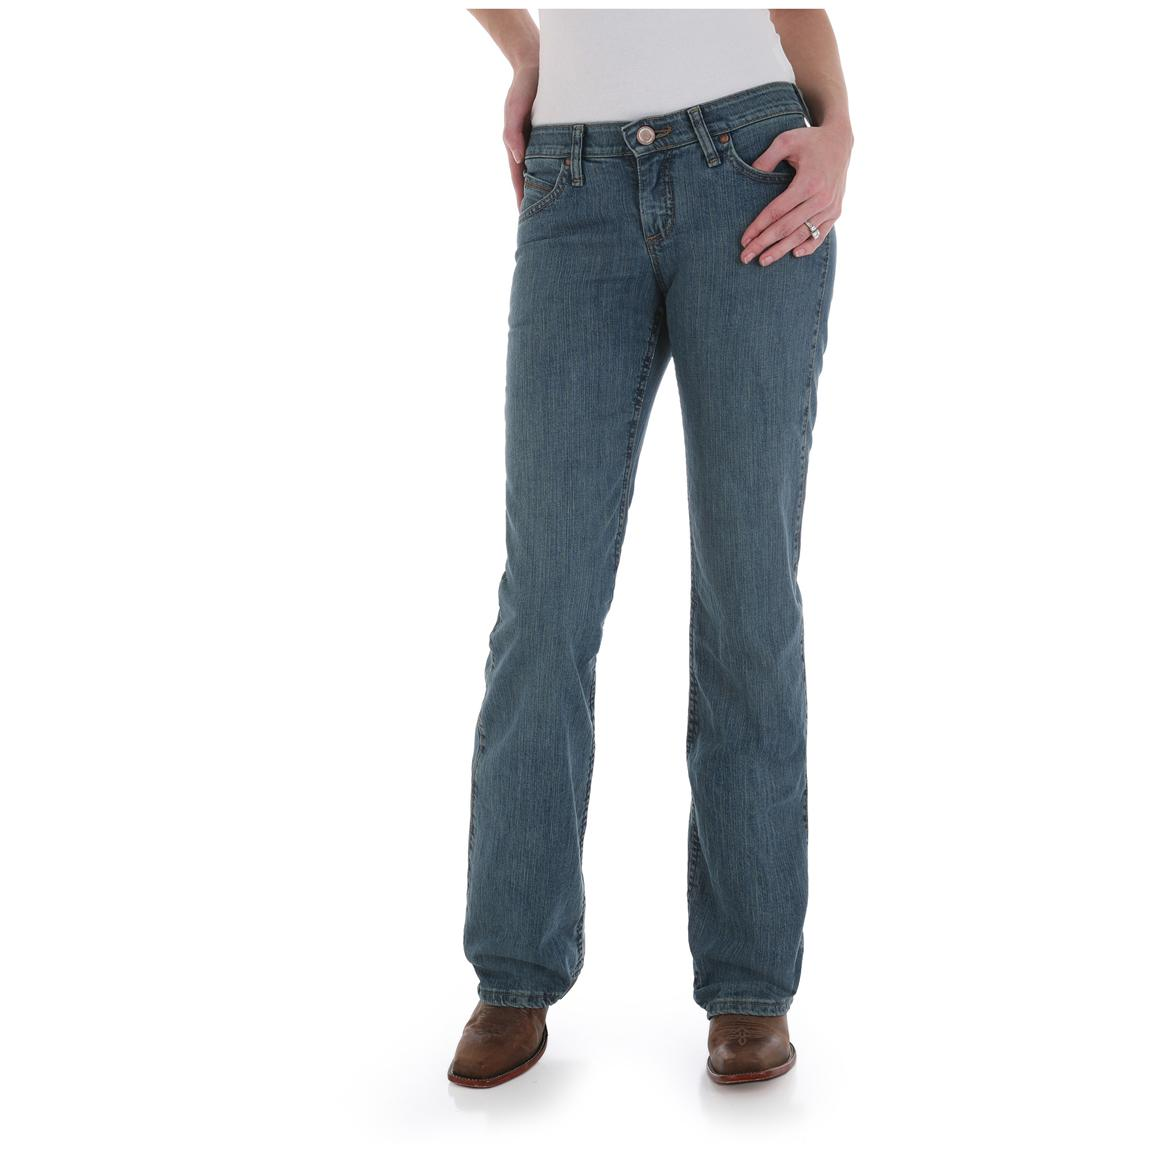 Women's Wrangler® Cowgirl Cut® Shiloh Ultimate Riding® Jeans, Flame to Fame